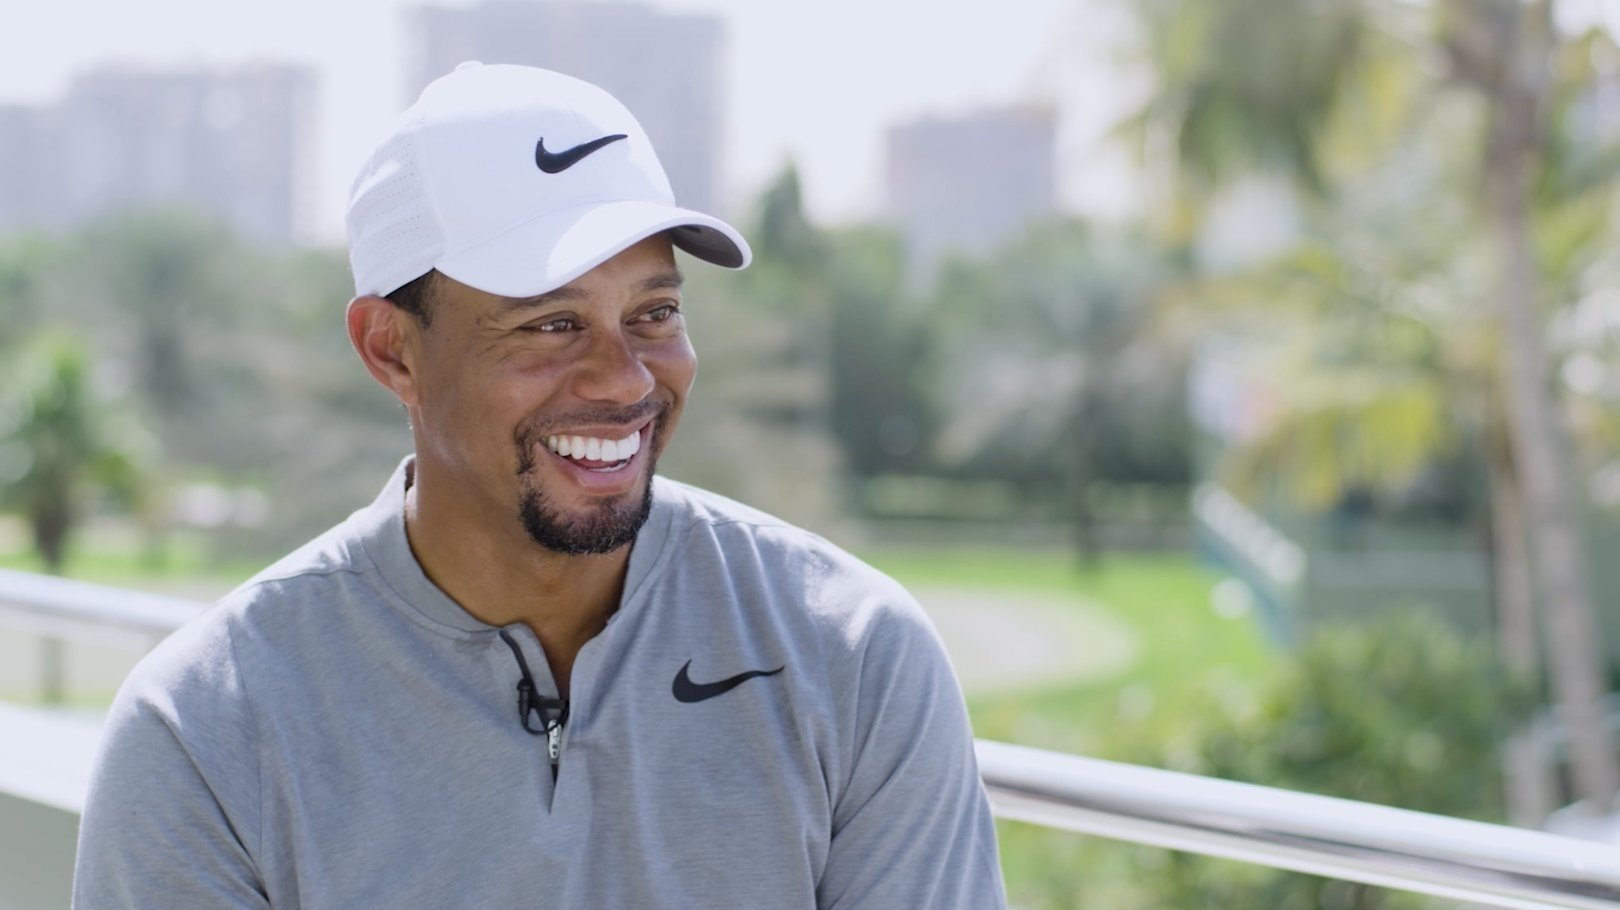 The hype machine is on overdrive as Tiger Woods gears up for his latest comeback, but this time the mood is cautiously upbeat rather than just hopeful.